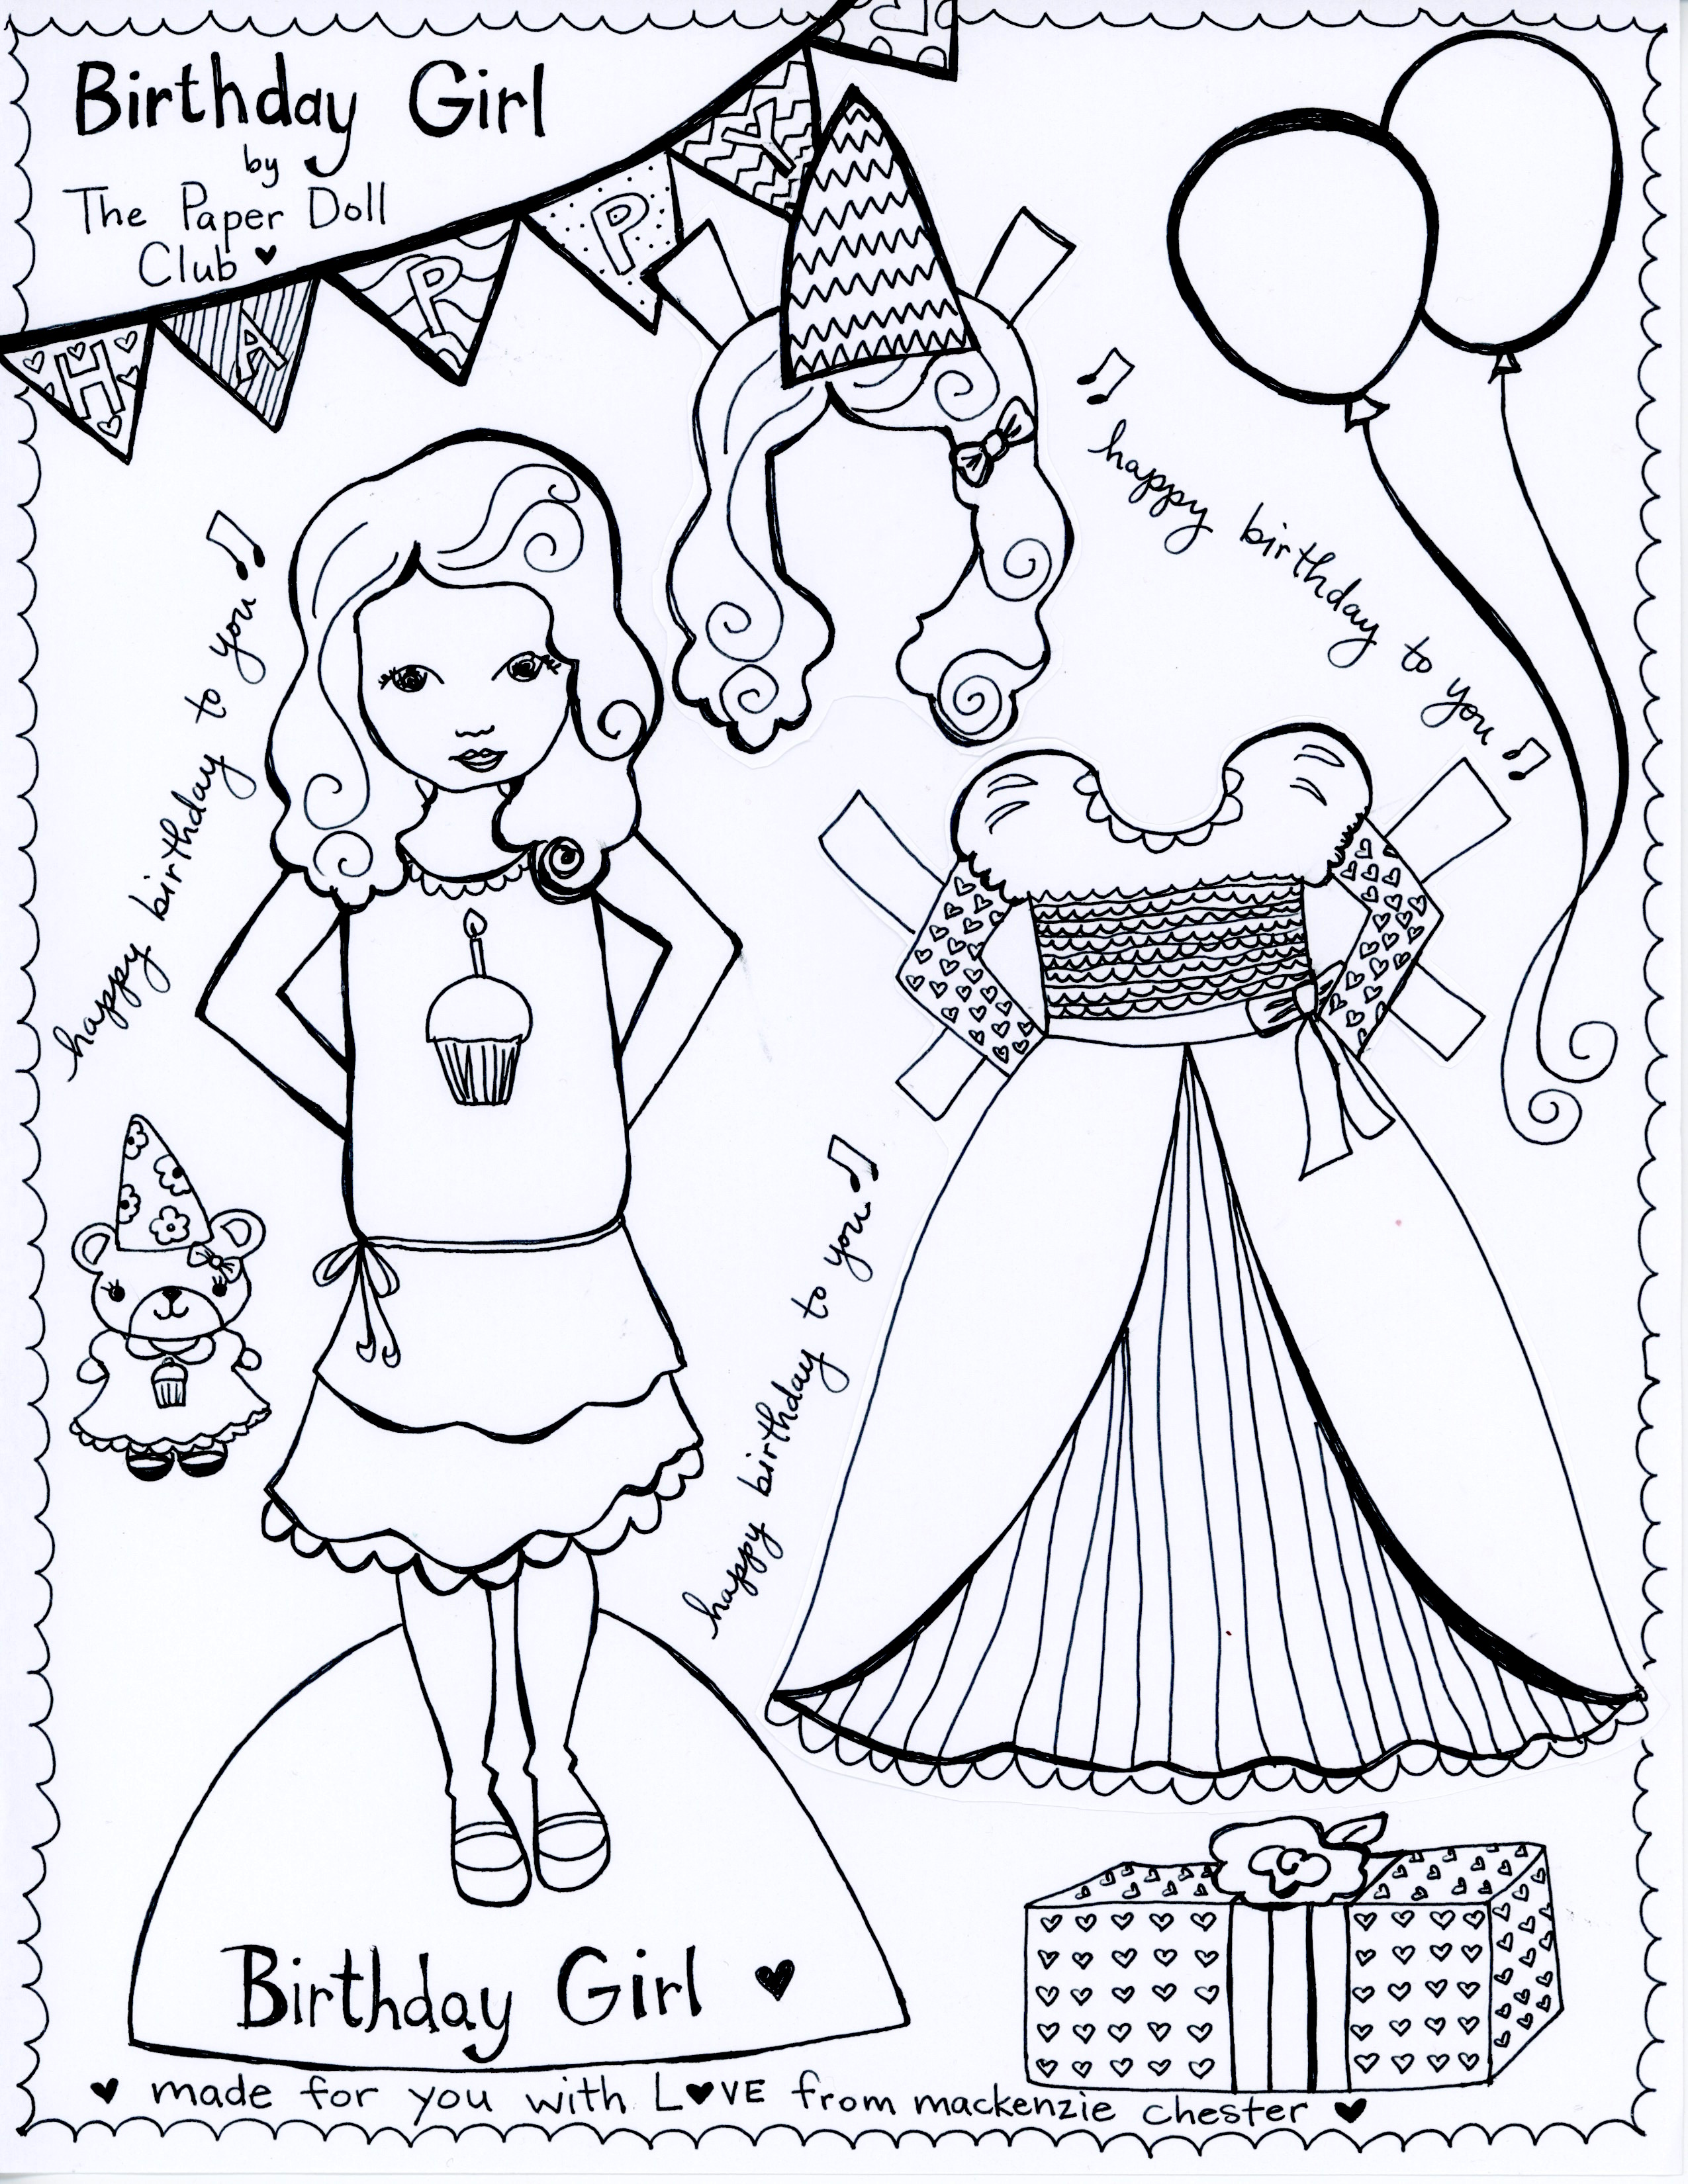 picture regarding Free Printable Paper Dolls Black and White identify Alice inside Wonderland and The Birthday Women, Paper Doll Club